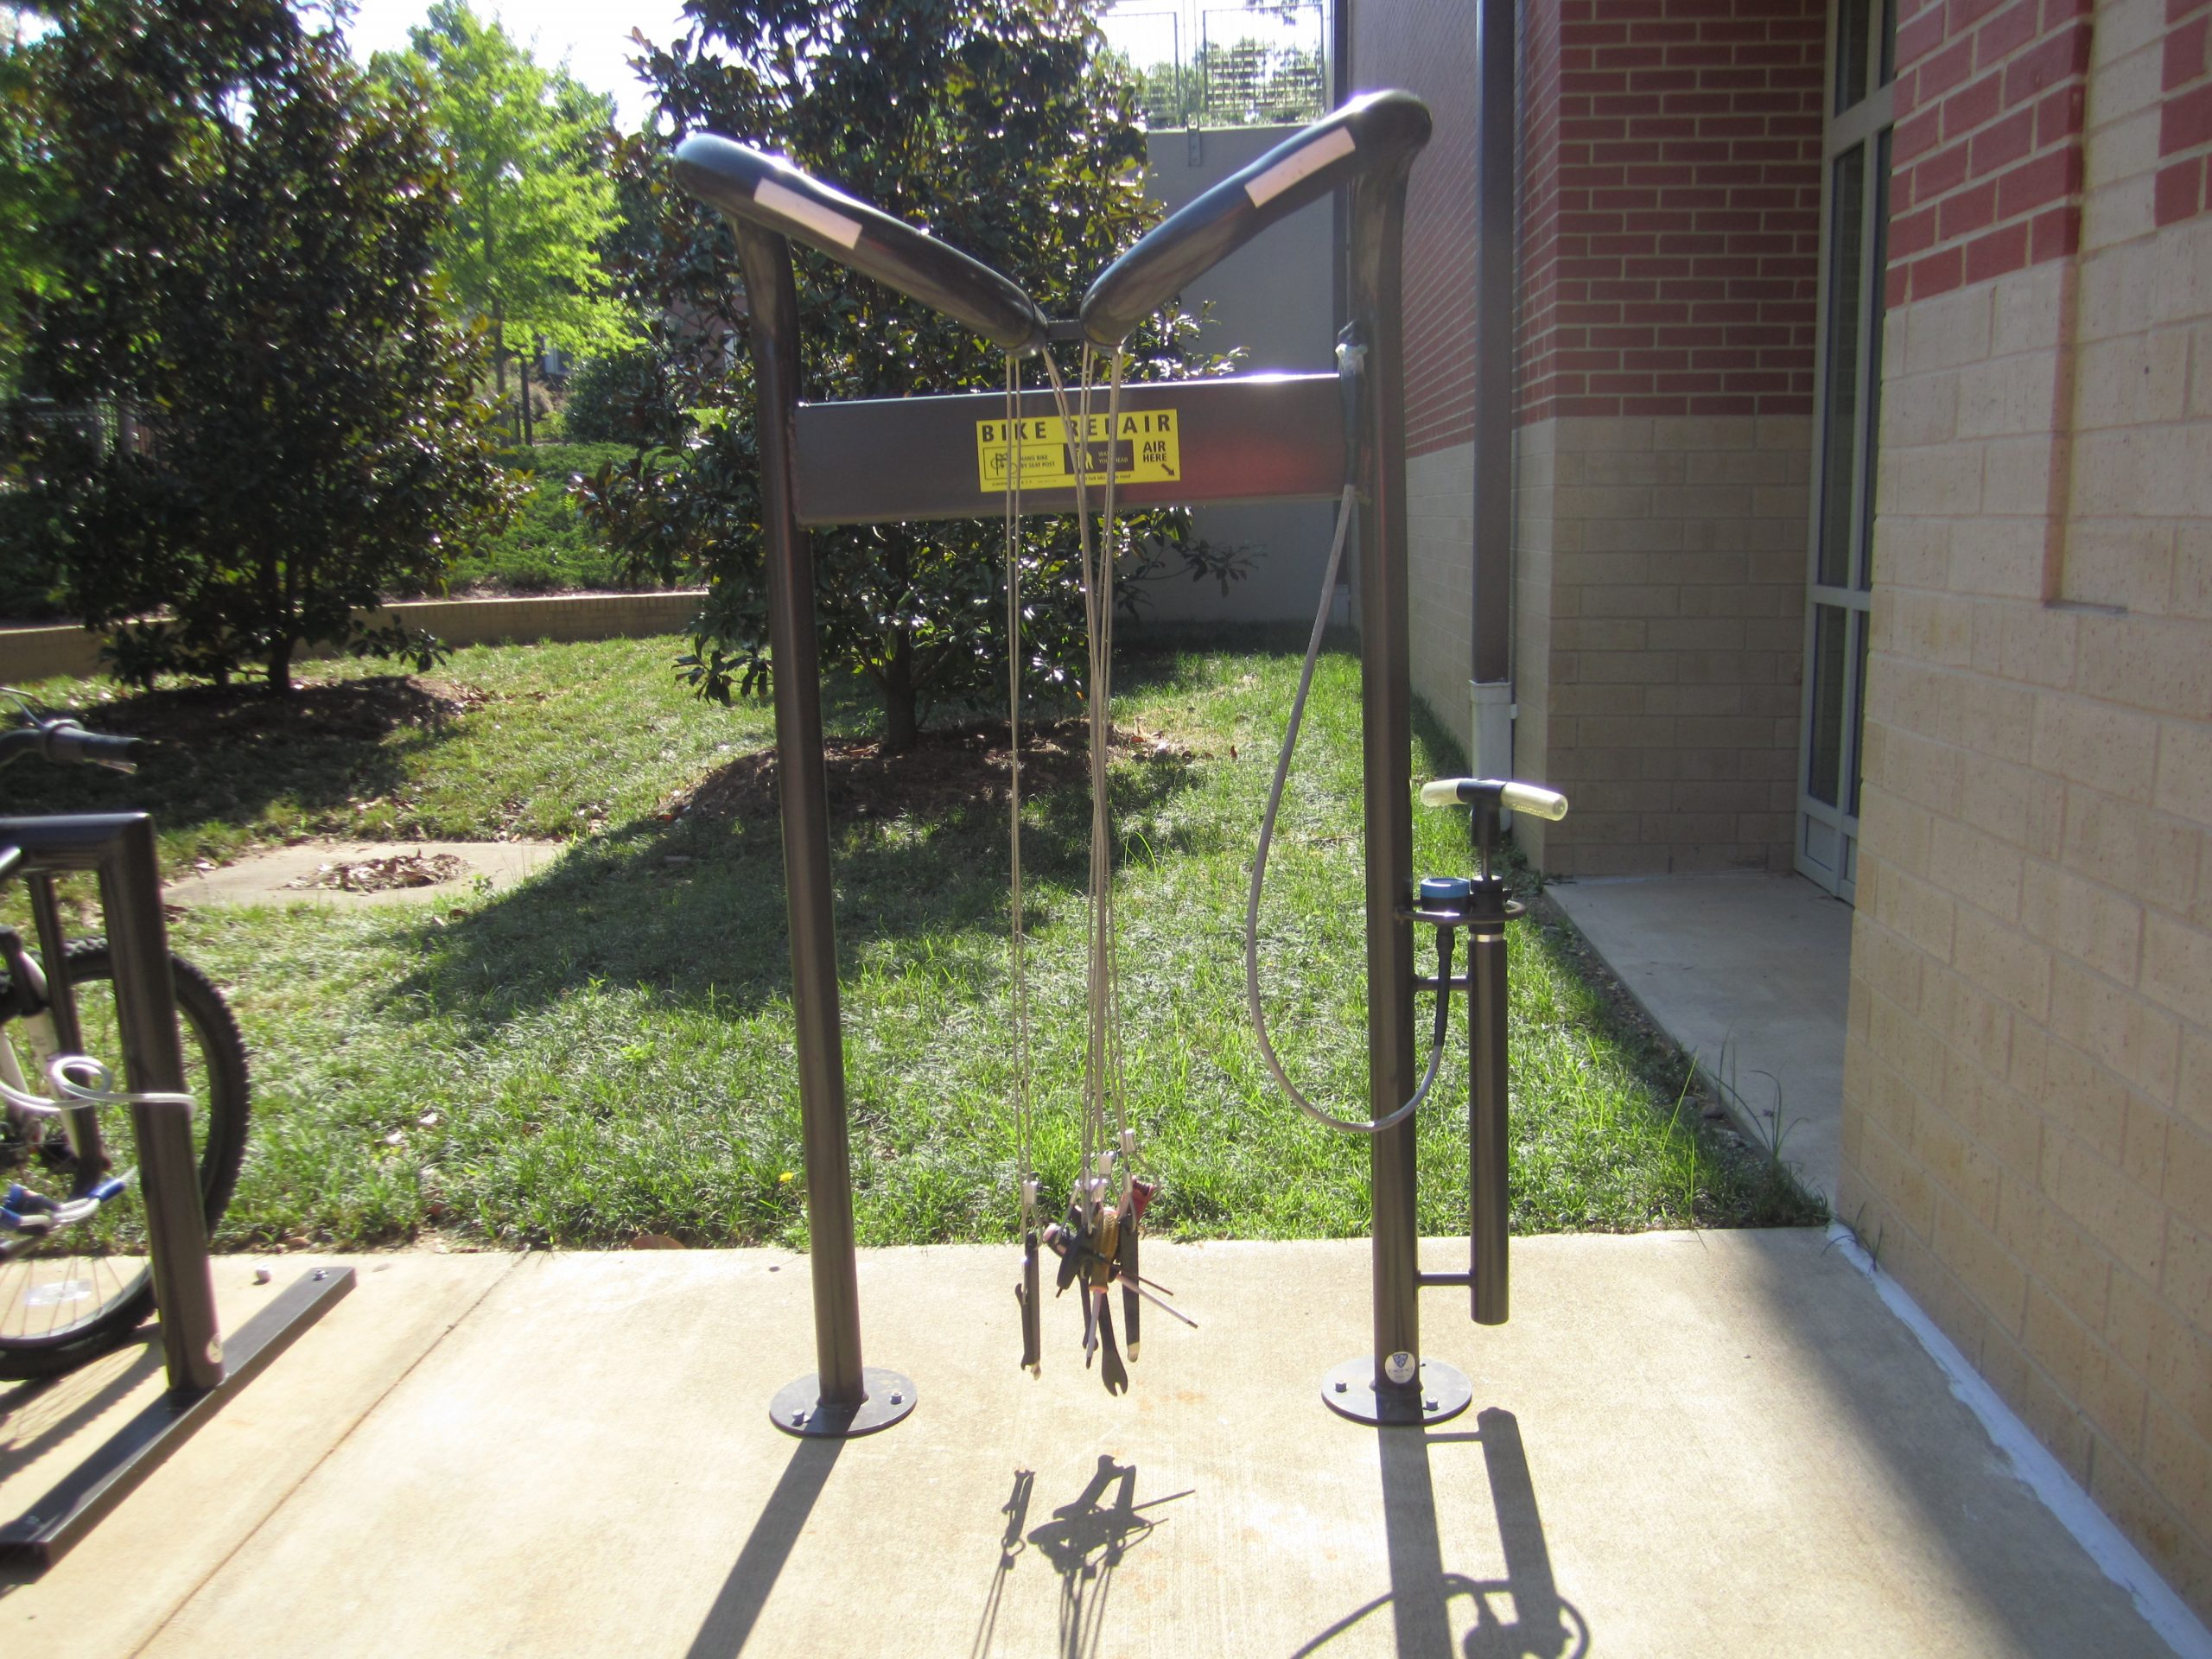 Photo of the Fix-It Repair station by the Melton Student Center.